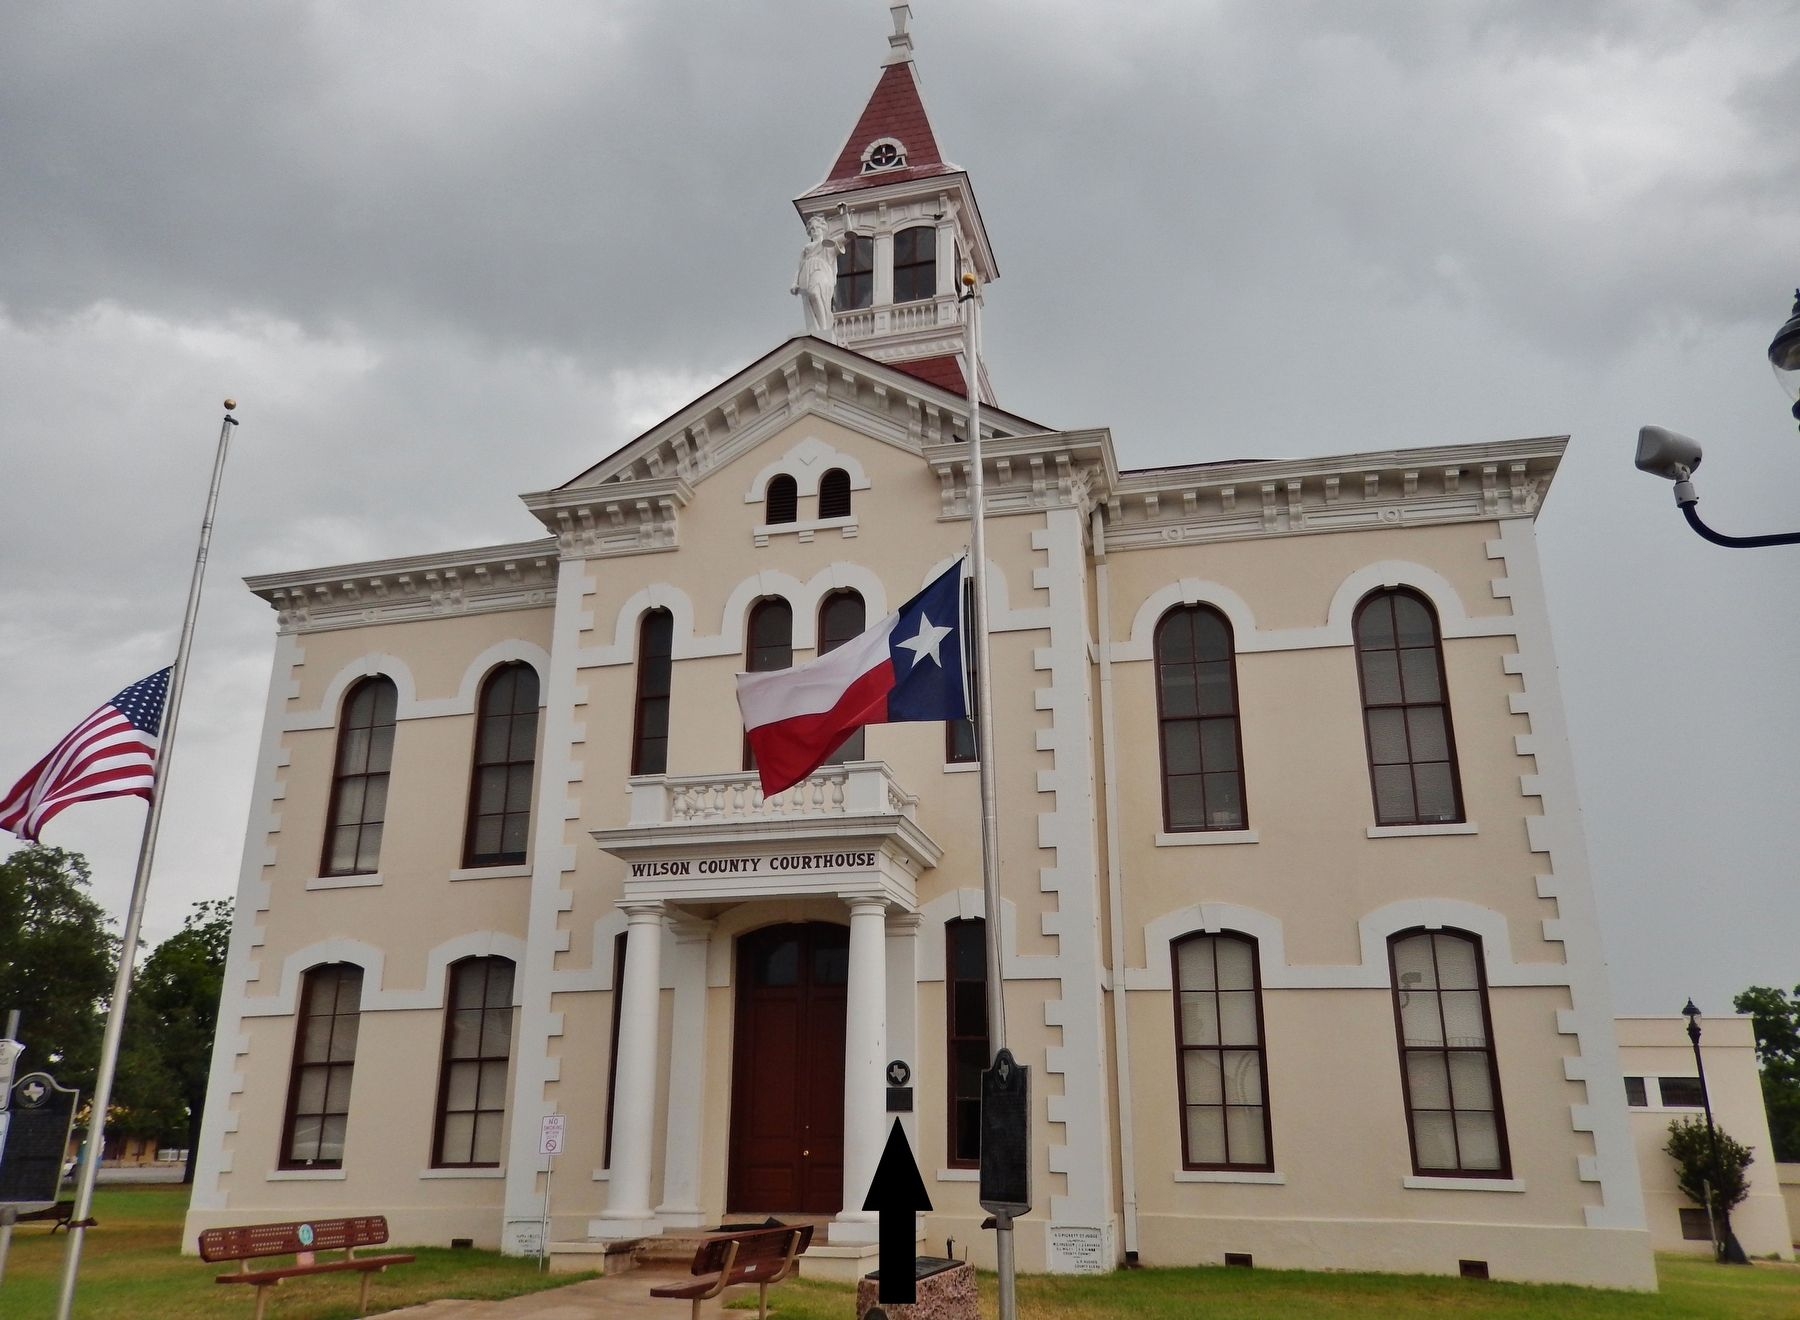 Wilson County Courthouse (<i>wide view; marker visible just right of entrance</i>) image. Click for full size.